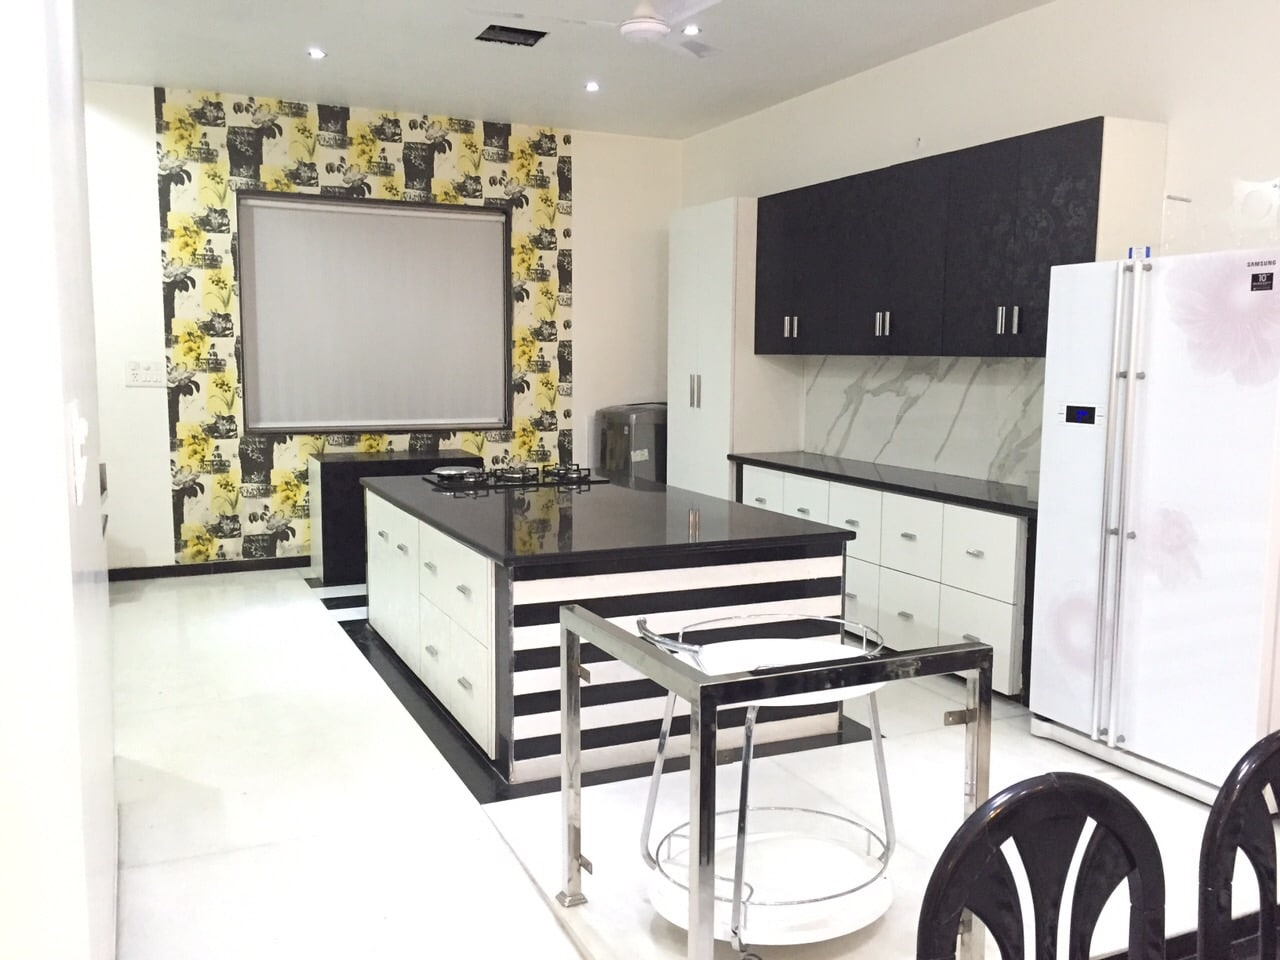 Well Furnished  Kitchen With Wall Art And Cabinets by Khyaati Verma Modular-kitchen Contemporary | Interior Design Photos & Ideas